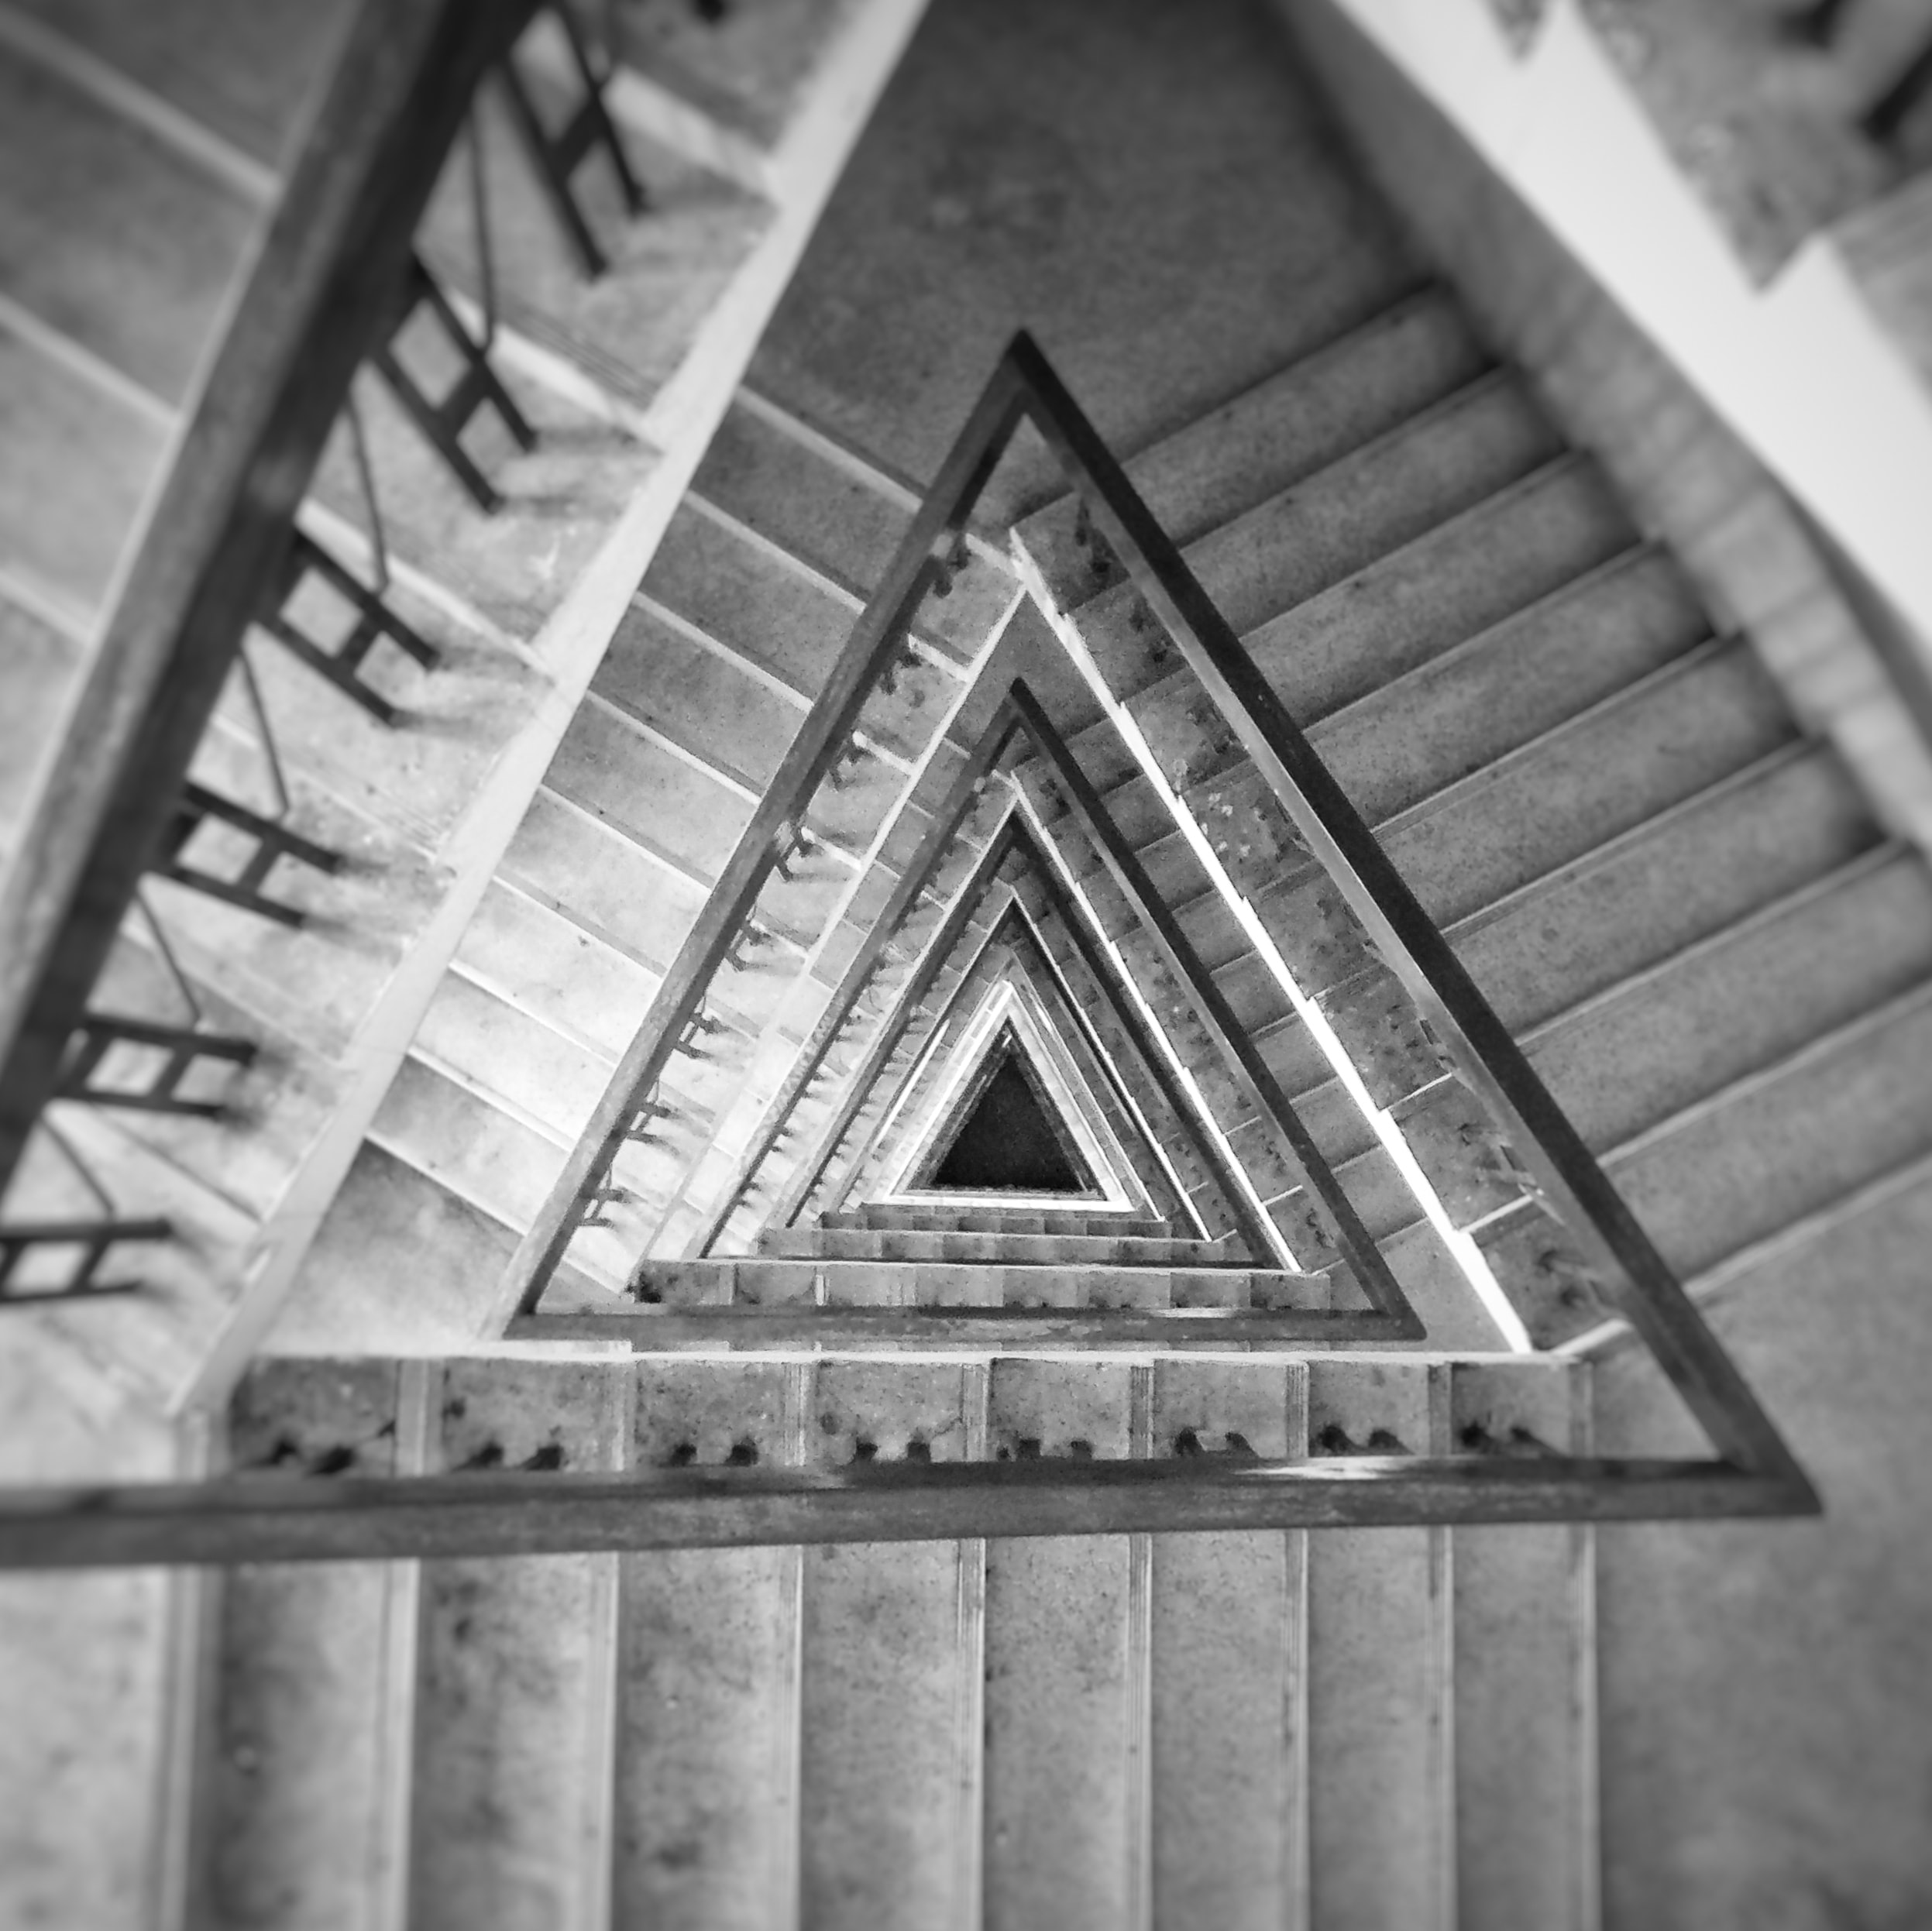 high-angle grayscale photography of triangular staircase